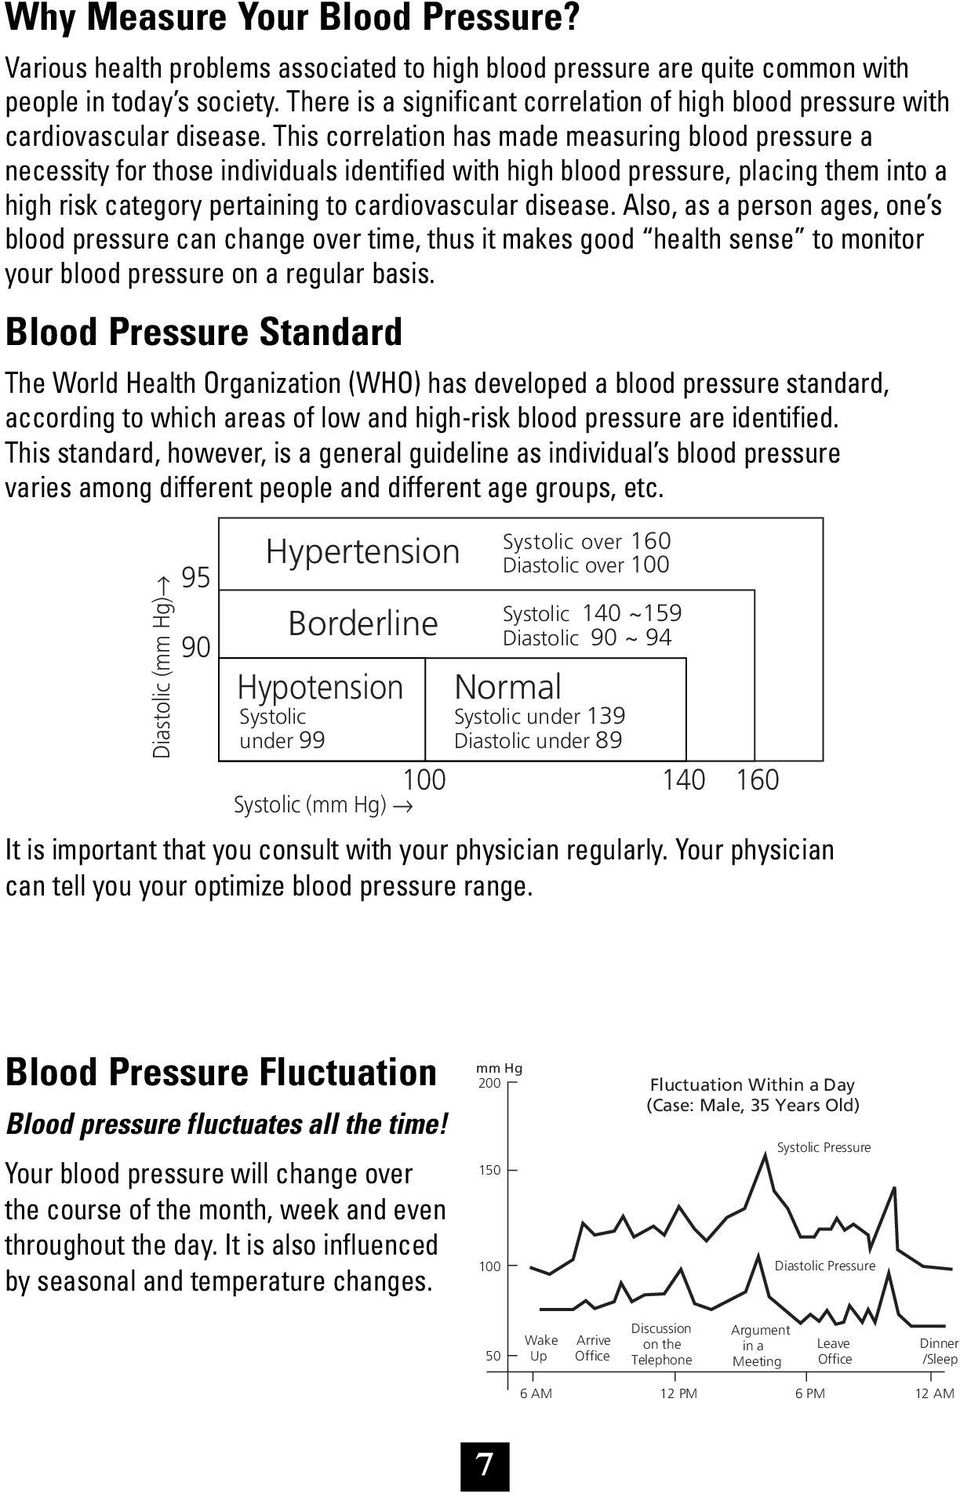 This correlation has made measuring blood pressure a necessity for those individuals identified with high blood pressure, placing them into a high risk category pertaining to cardiovascular disease.